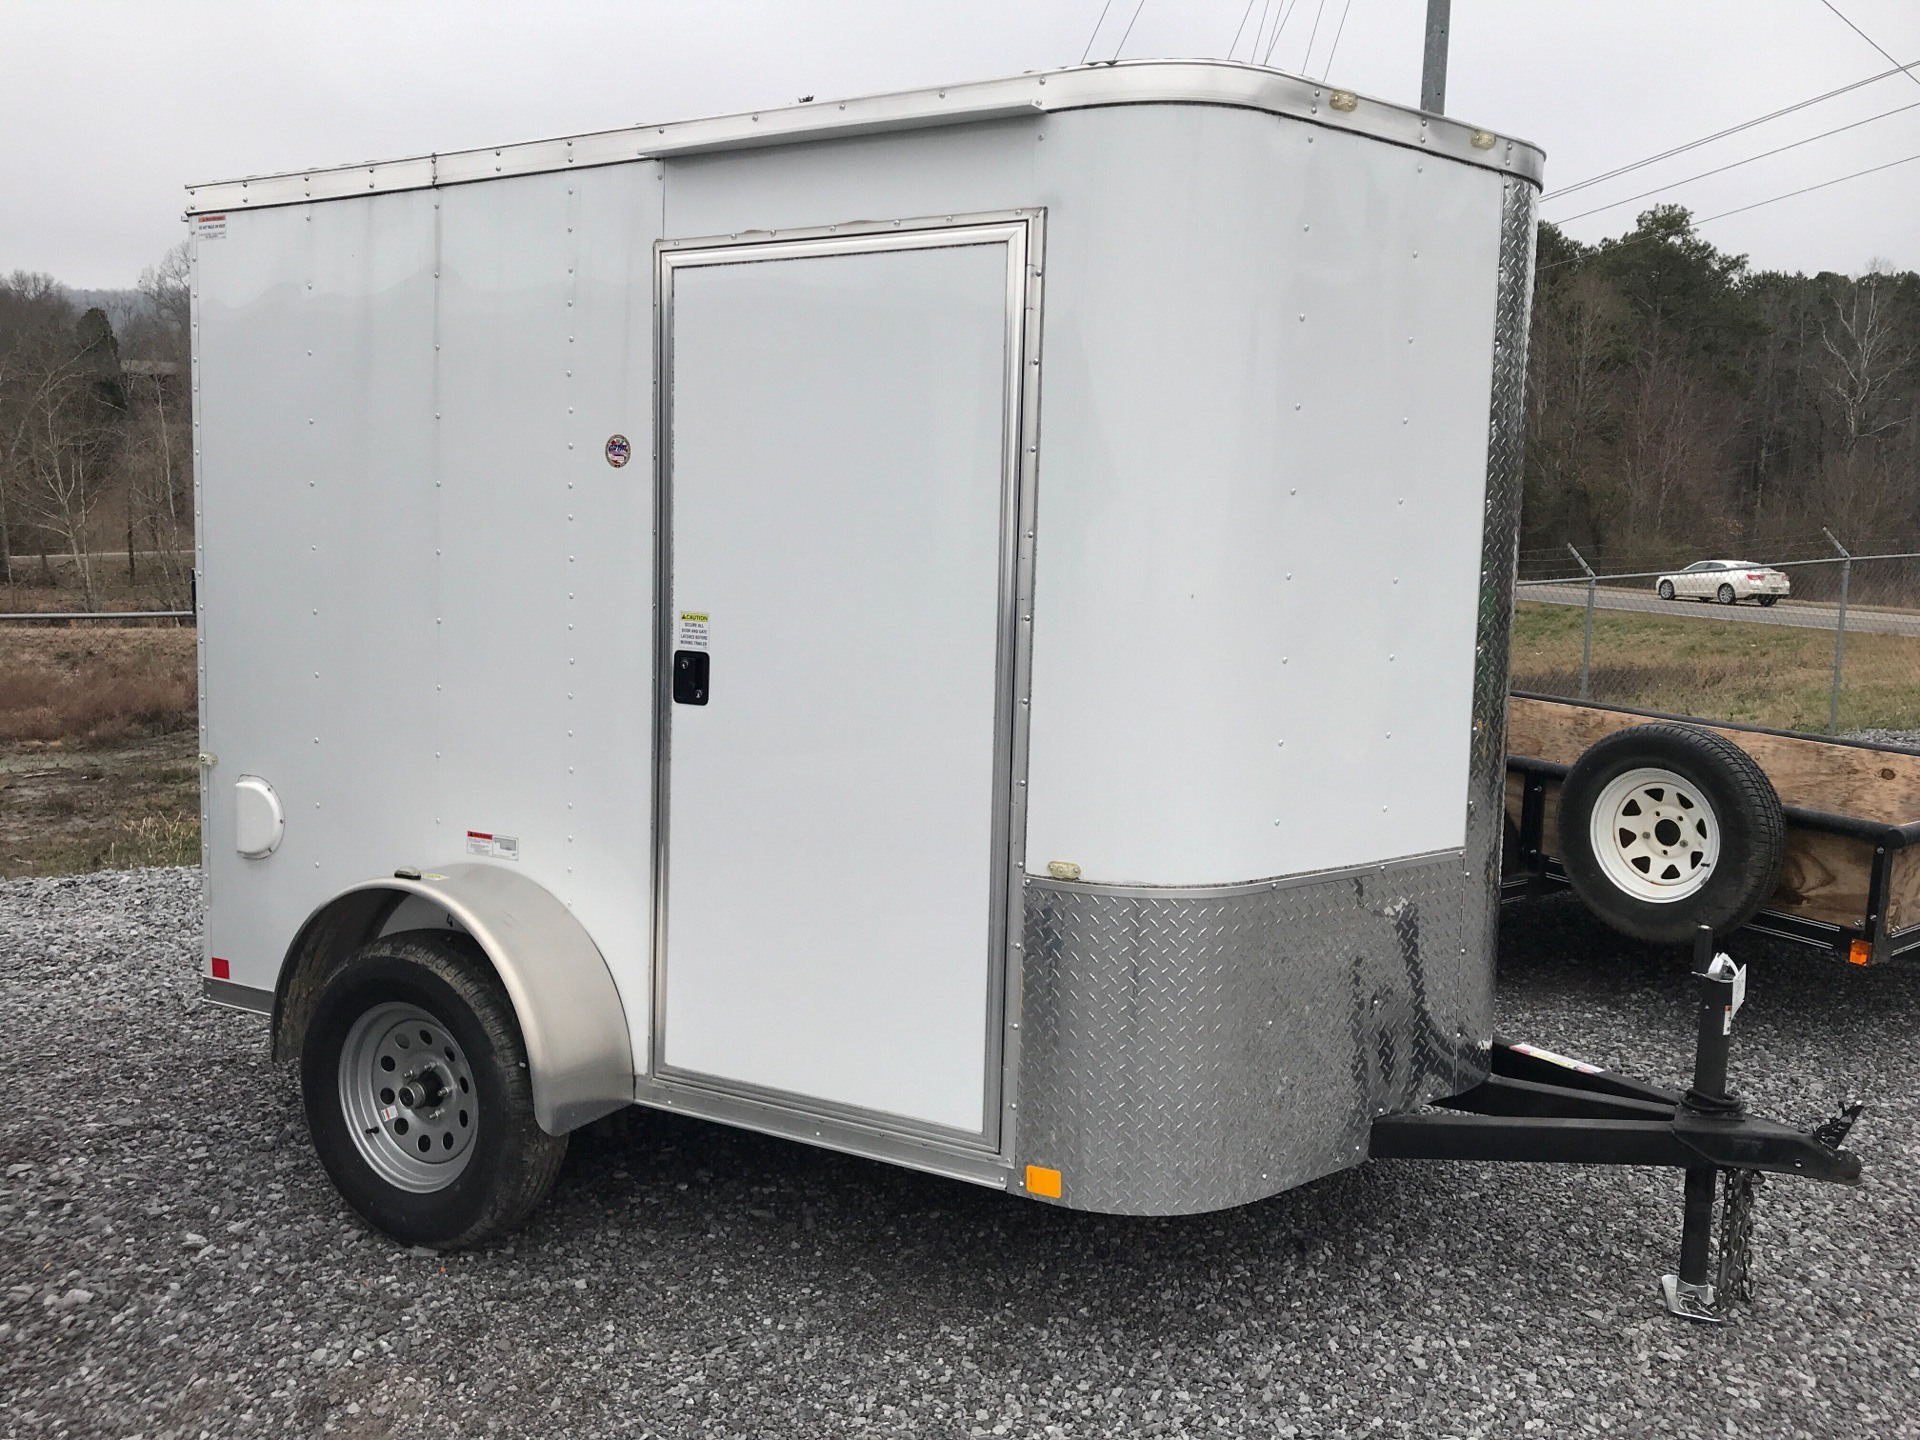 2018 Cargo Craft, Inc. 6x10 Elite Enclosed Trailer in Leesburg, Alabama